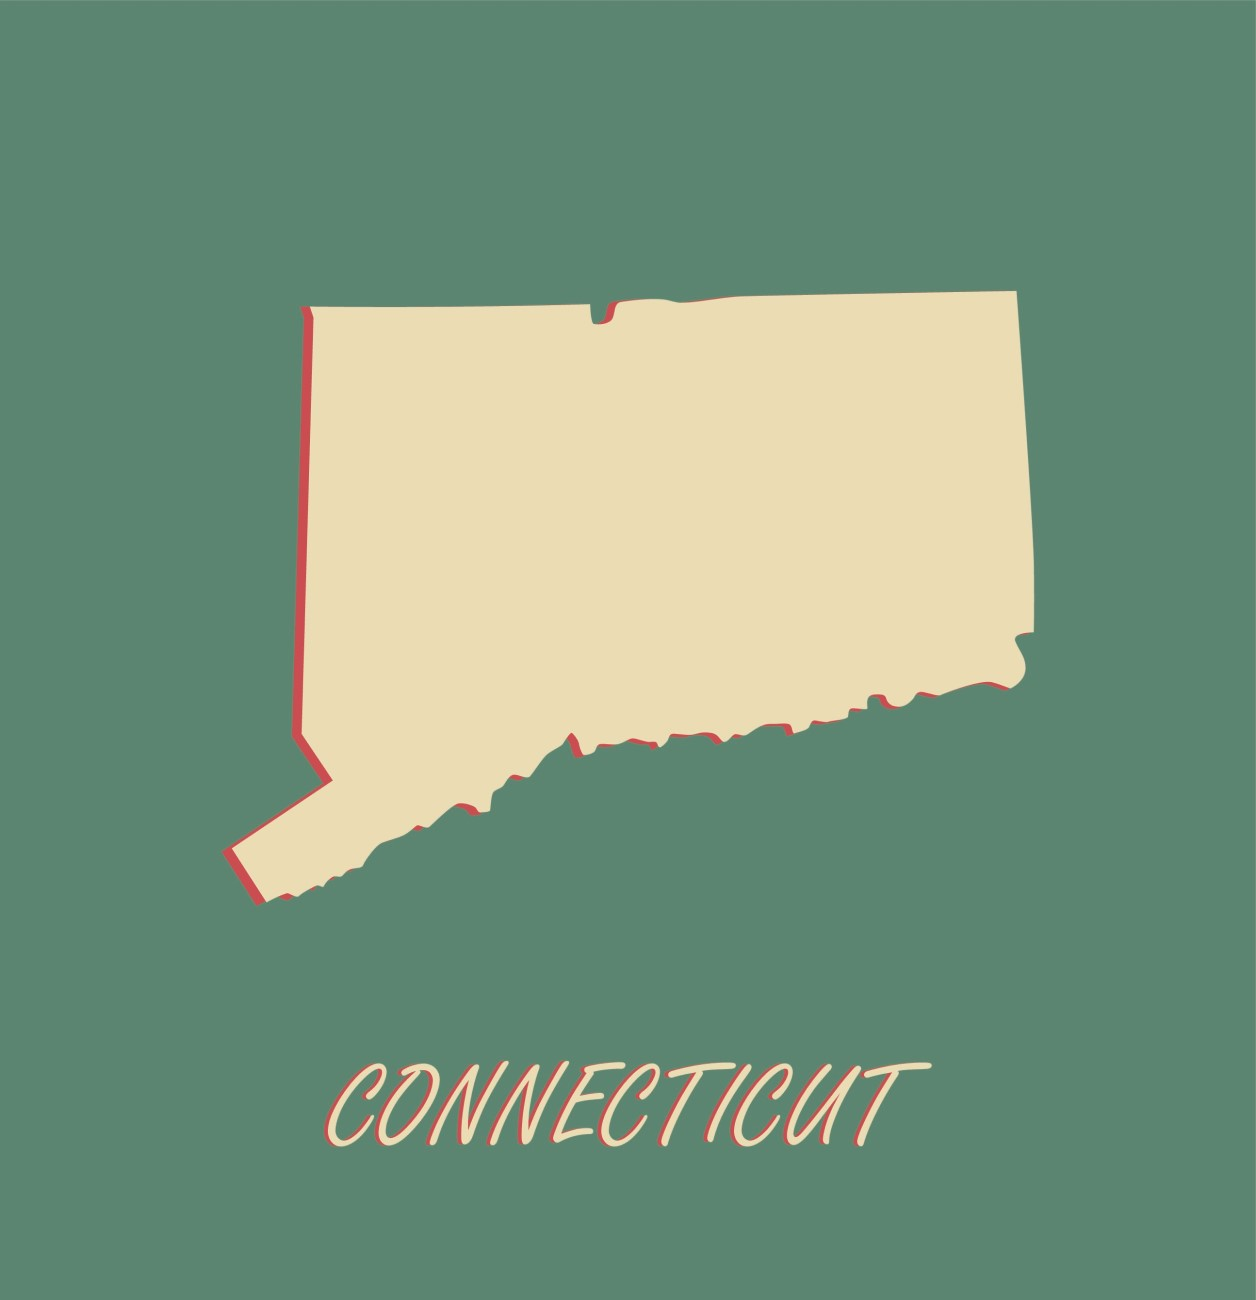 Nanny tax and payroll requirements for Connecticut families